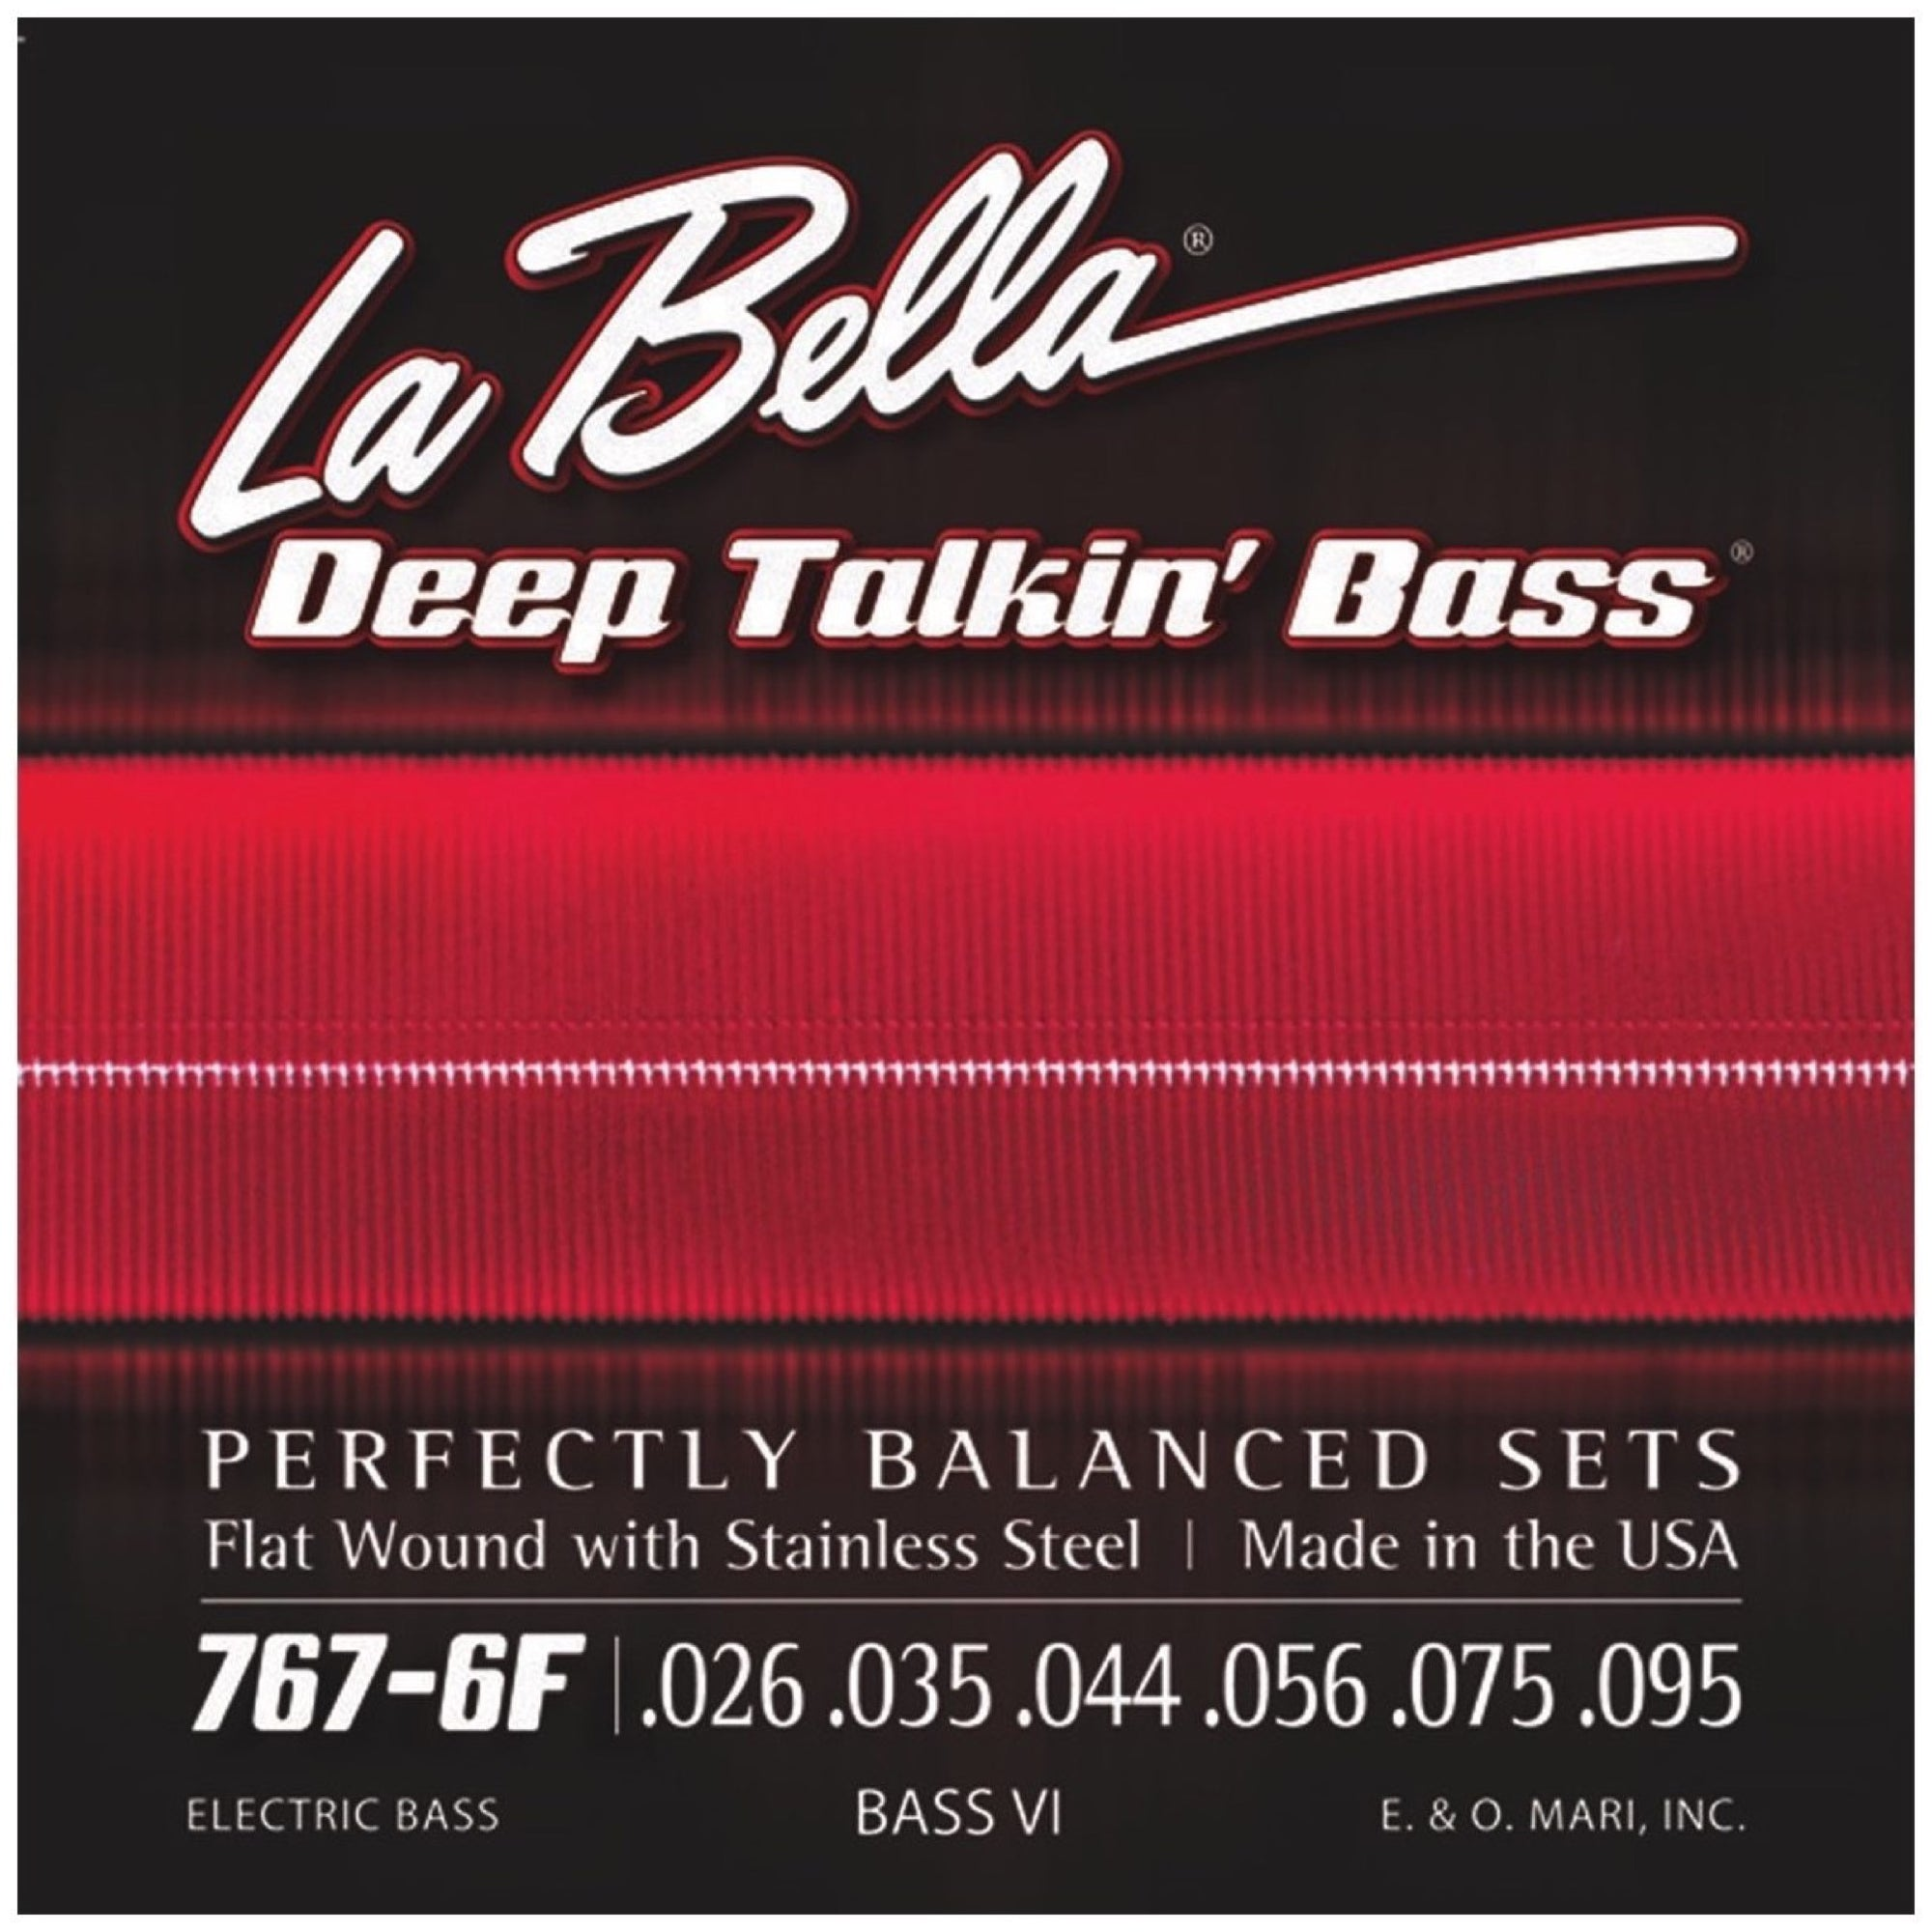 La Bella 767-6F Bass VI Flatwound Electric Bass Strings